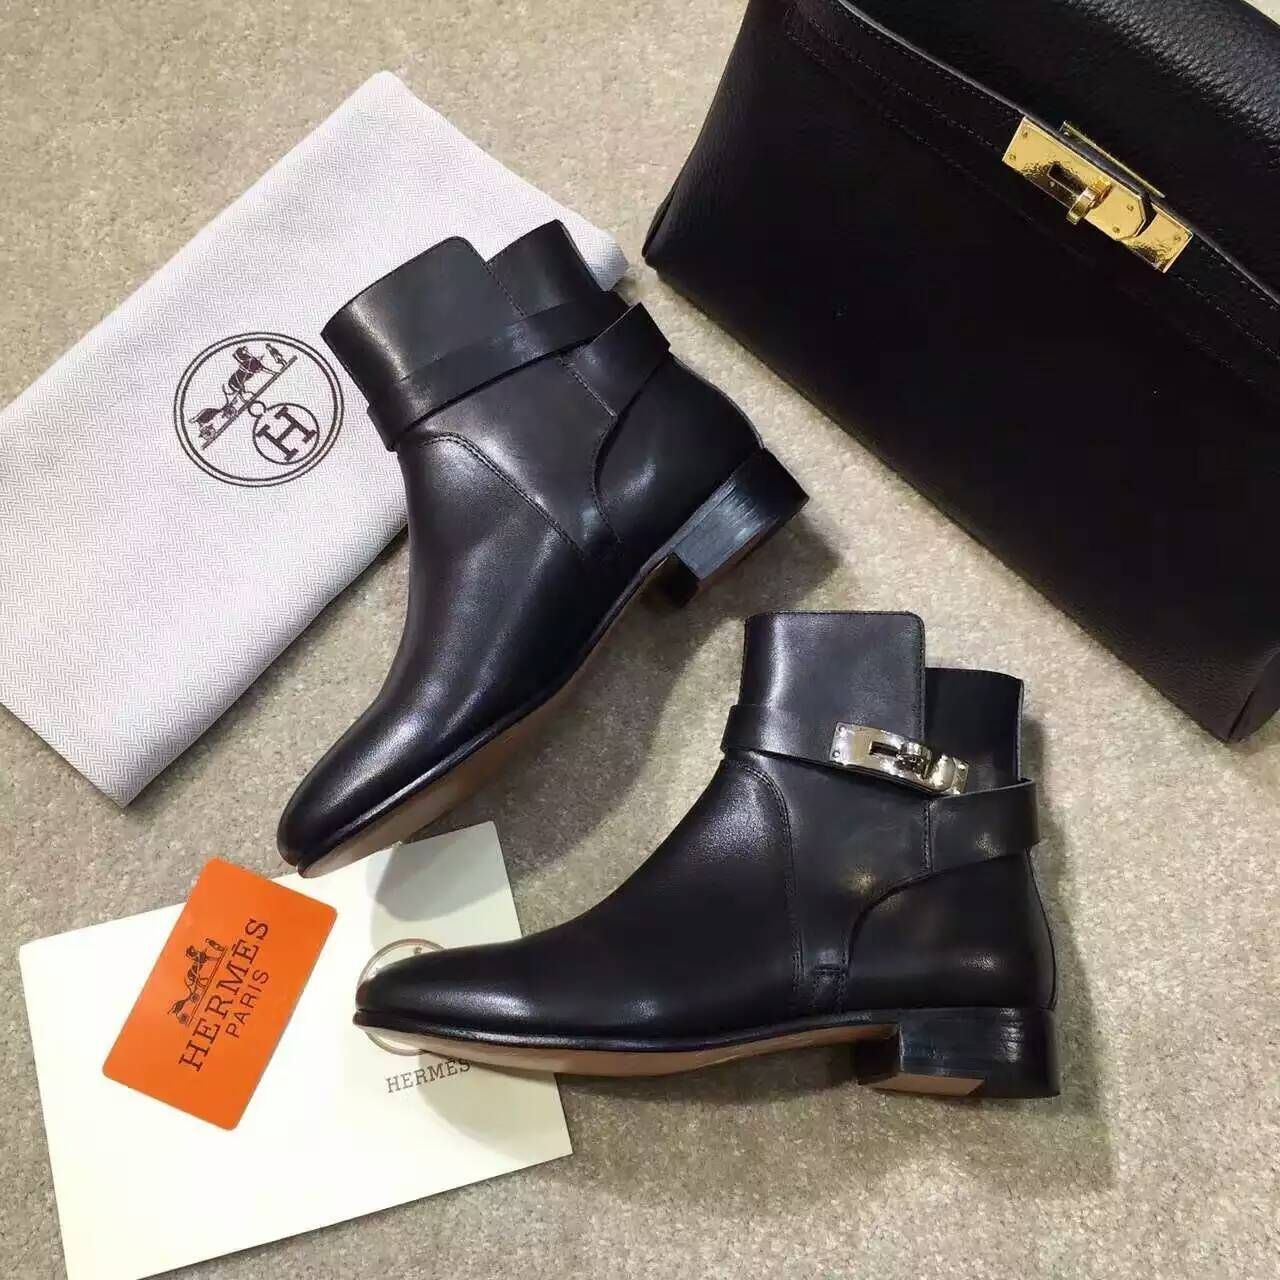 98c7953cc028 Latest Hermes Kelly ankle boots black